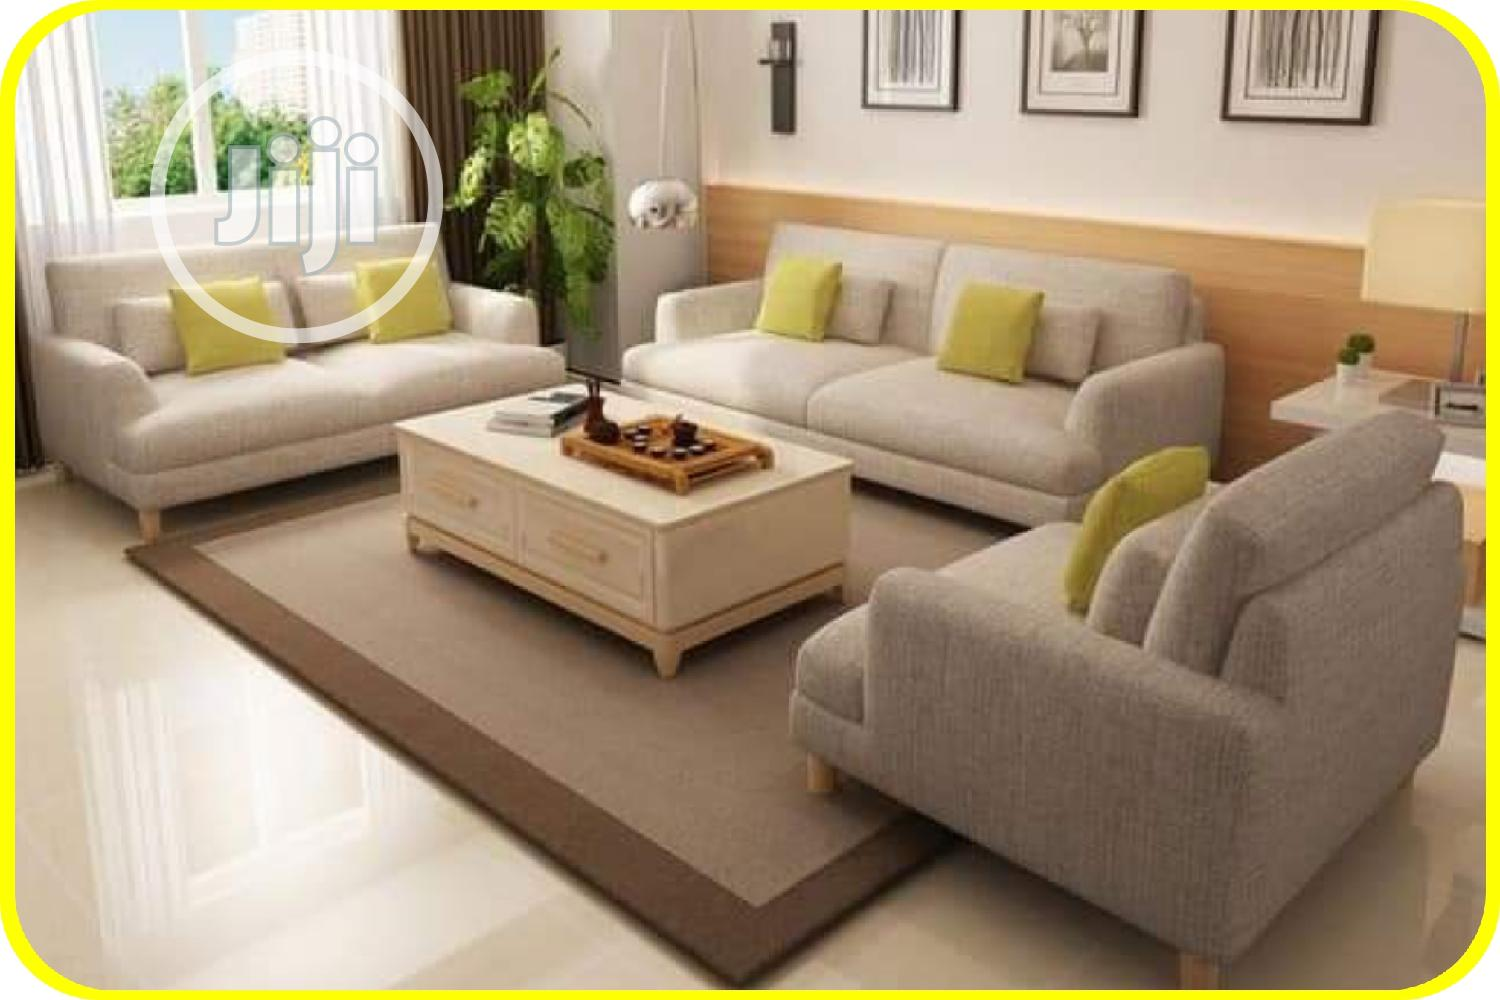 Complete Set Of 7 Seater Sofa With Center Table